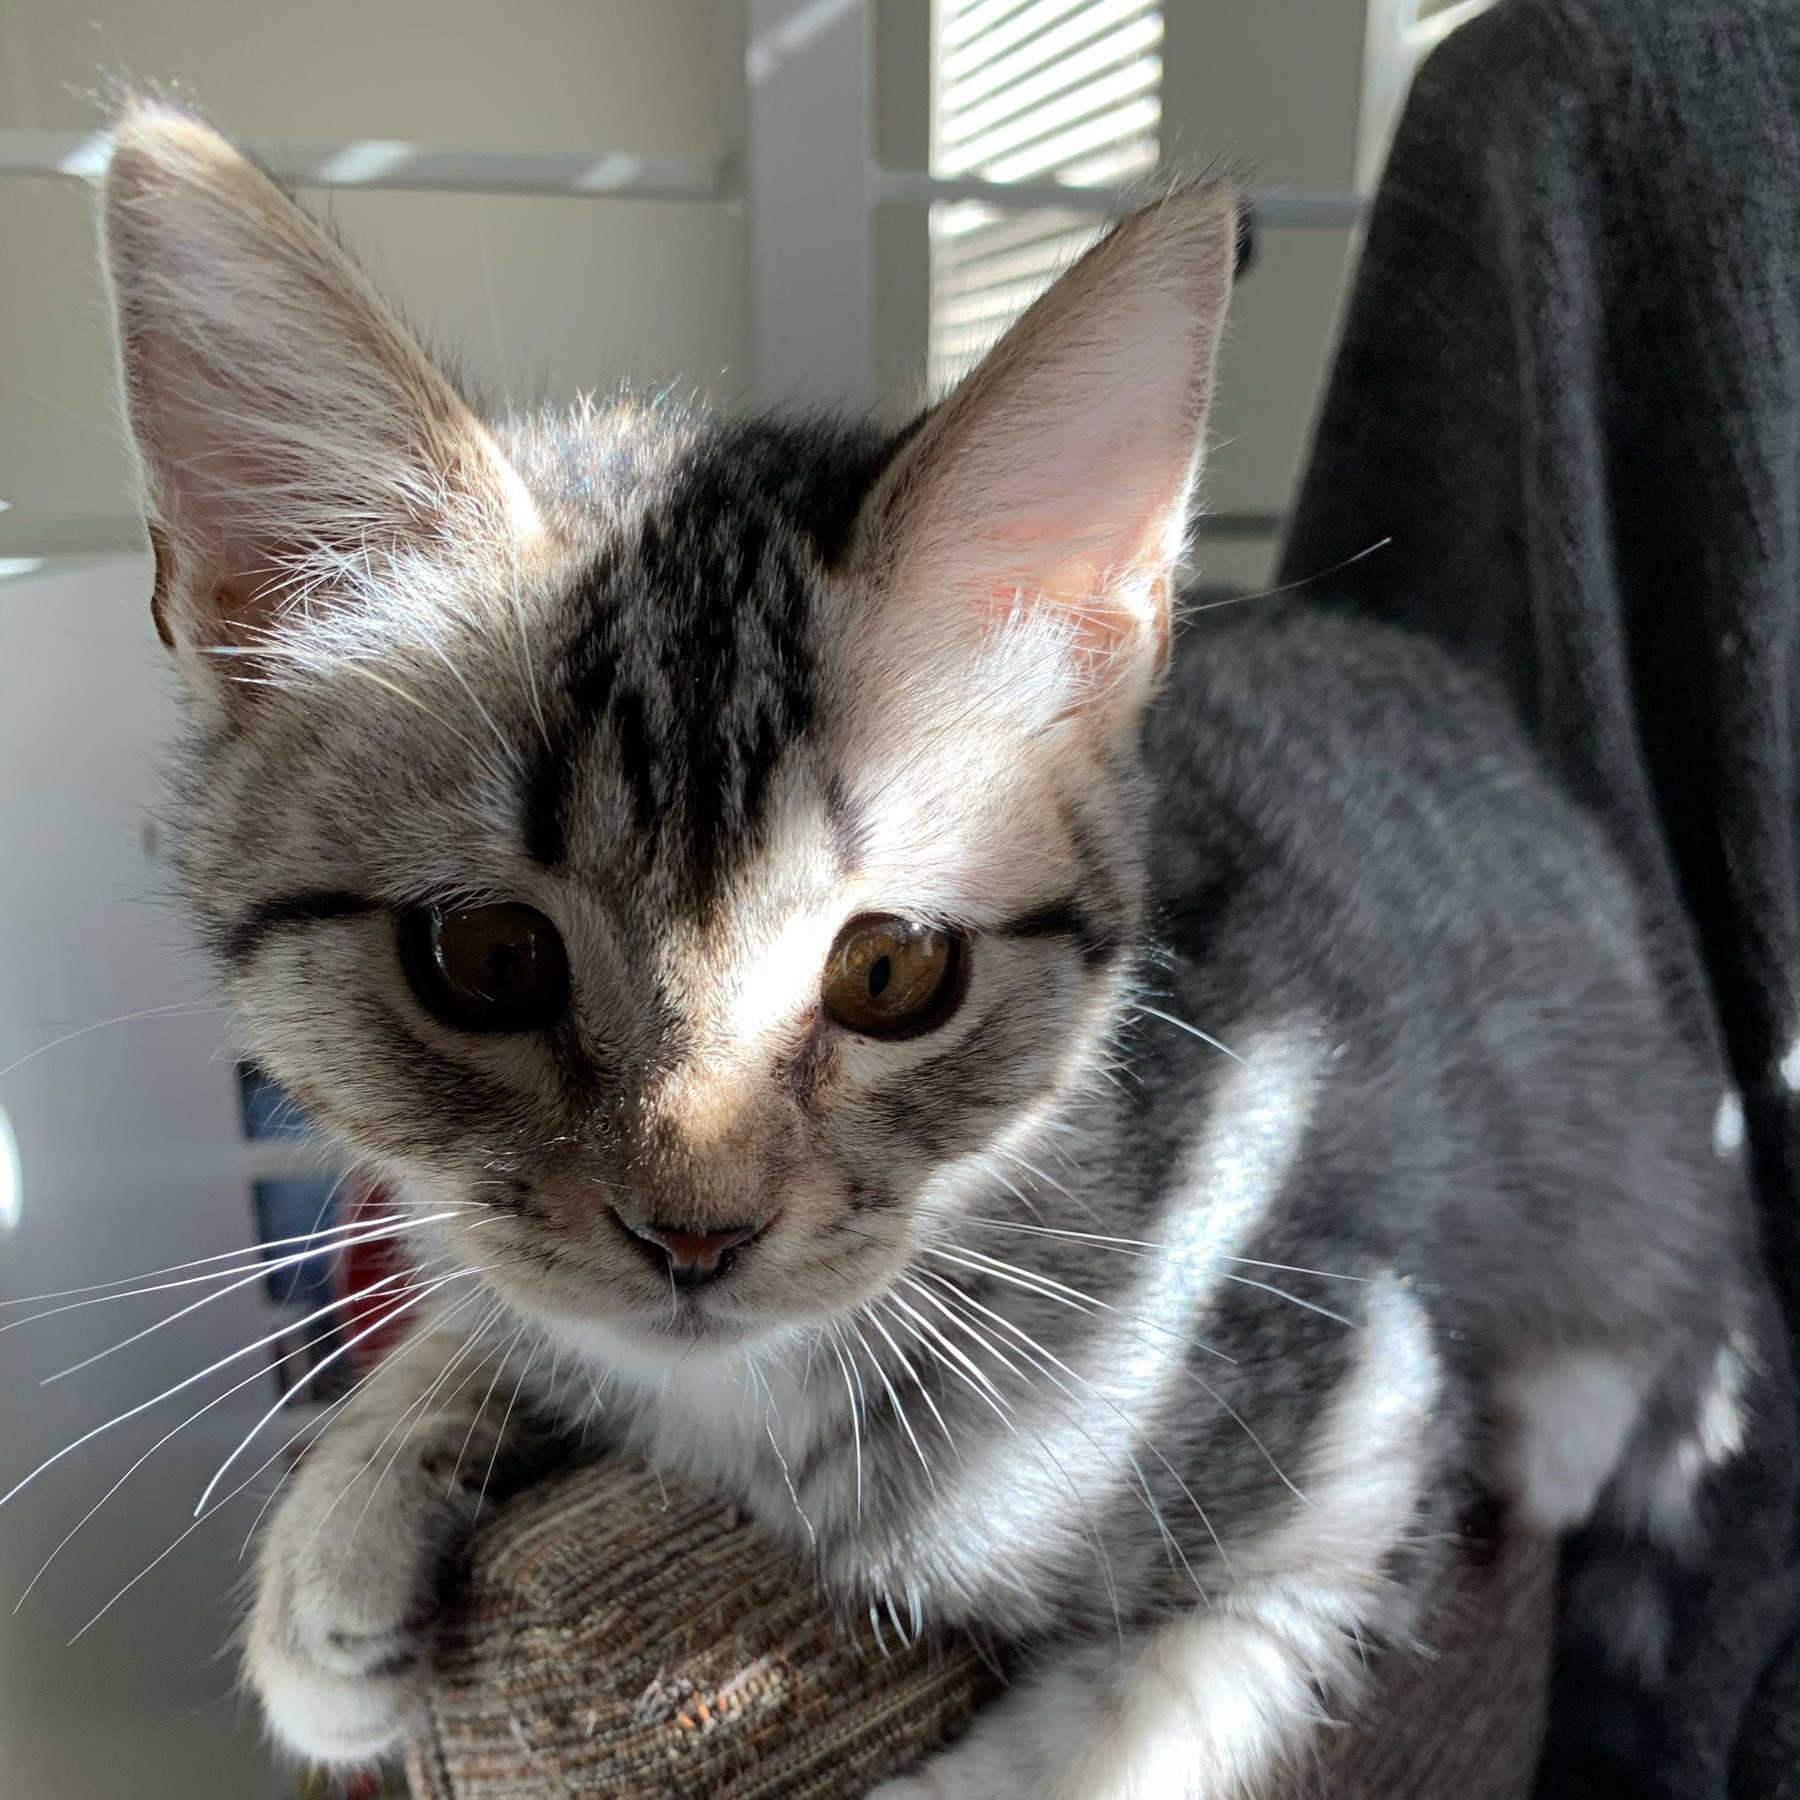 A grey, striped tabby kitten straddle the arm of an uphostered chair.